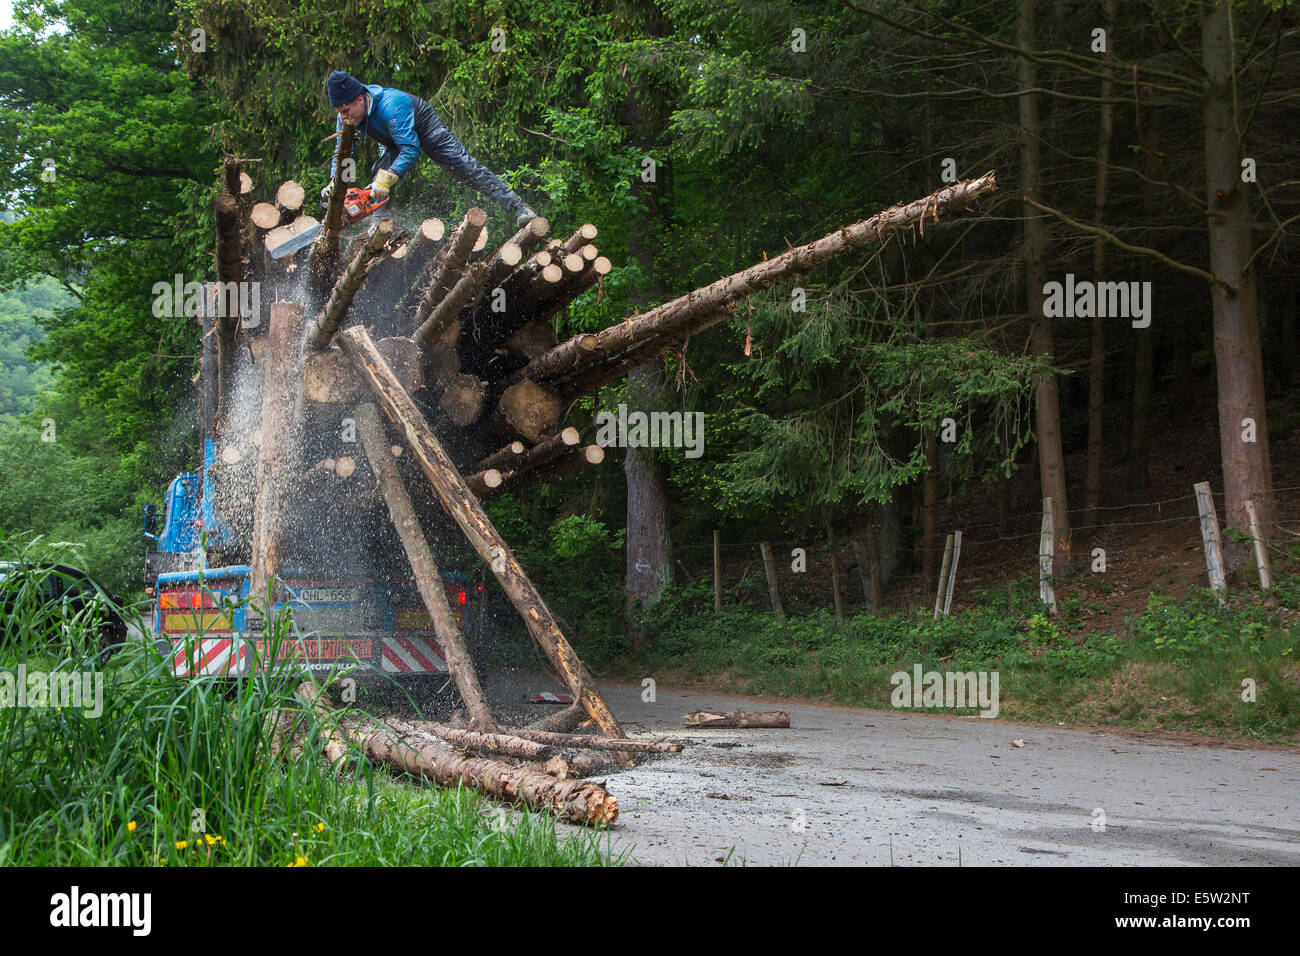 Forester cutting too long logs with chainsaw after loading felled tree trunks on logging truck in forest - Stock Image